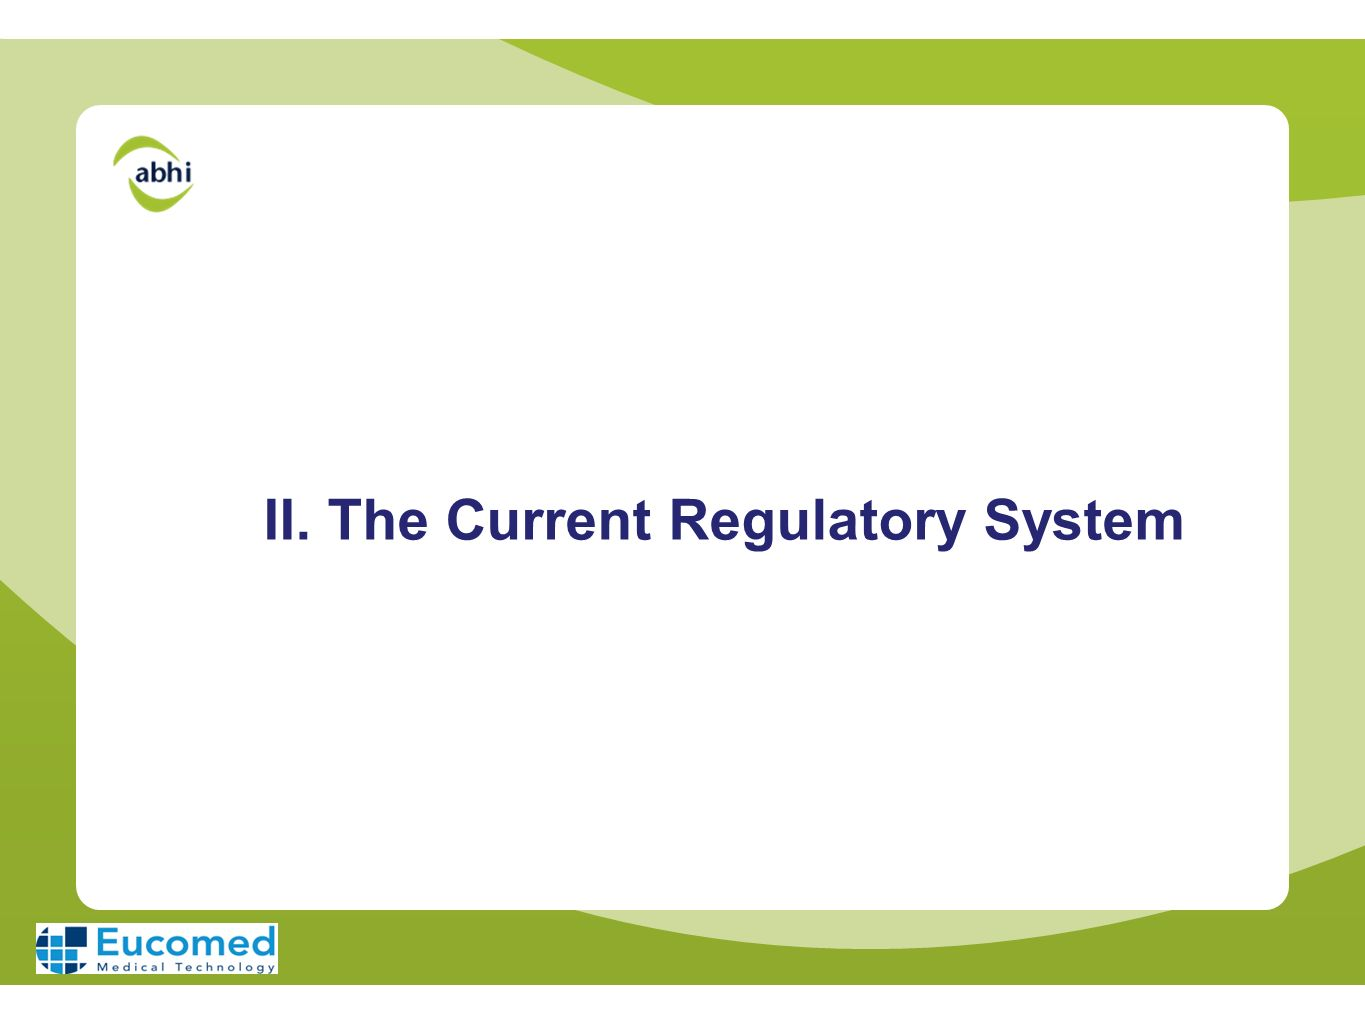 II. The Current Regulatory System